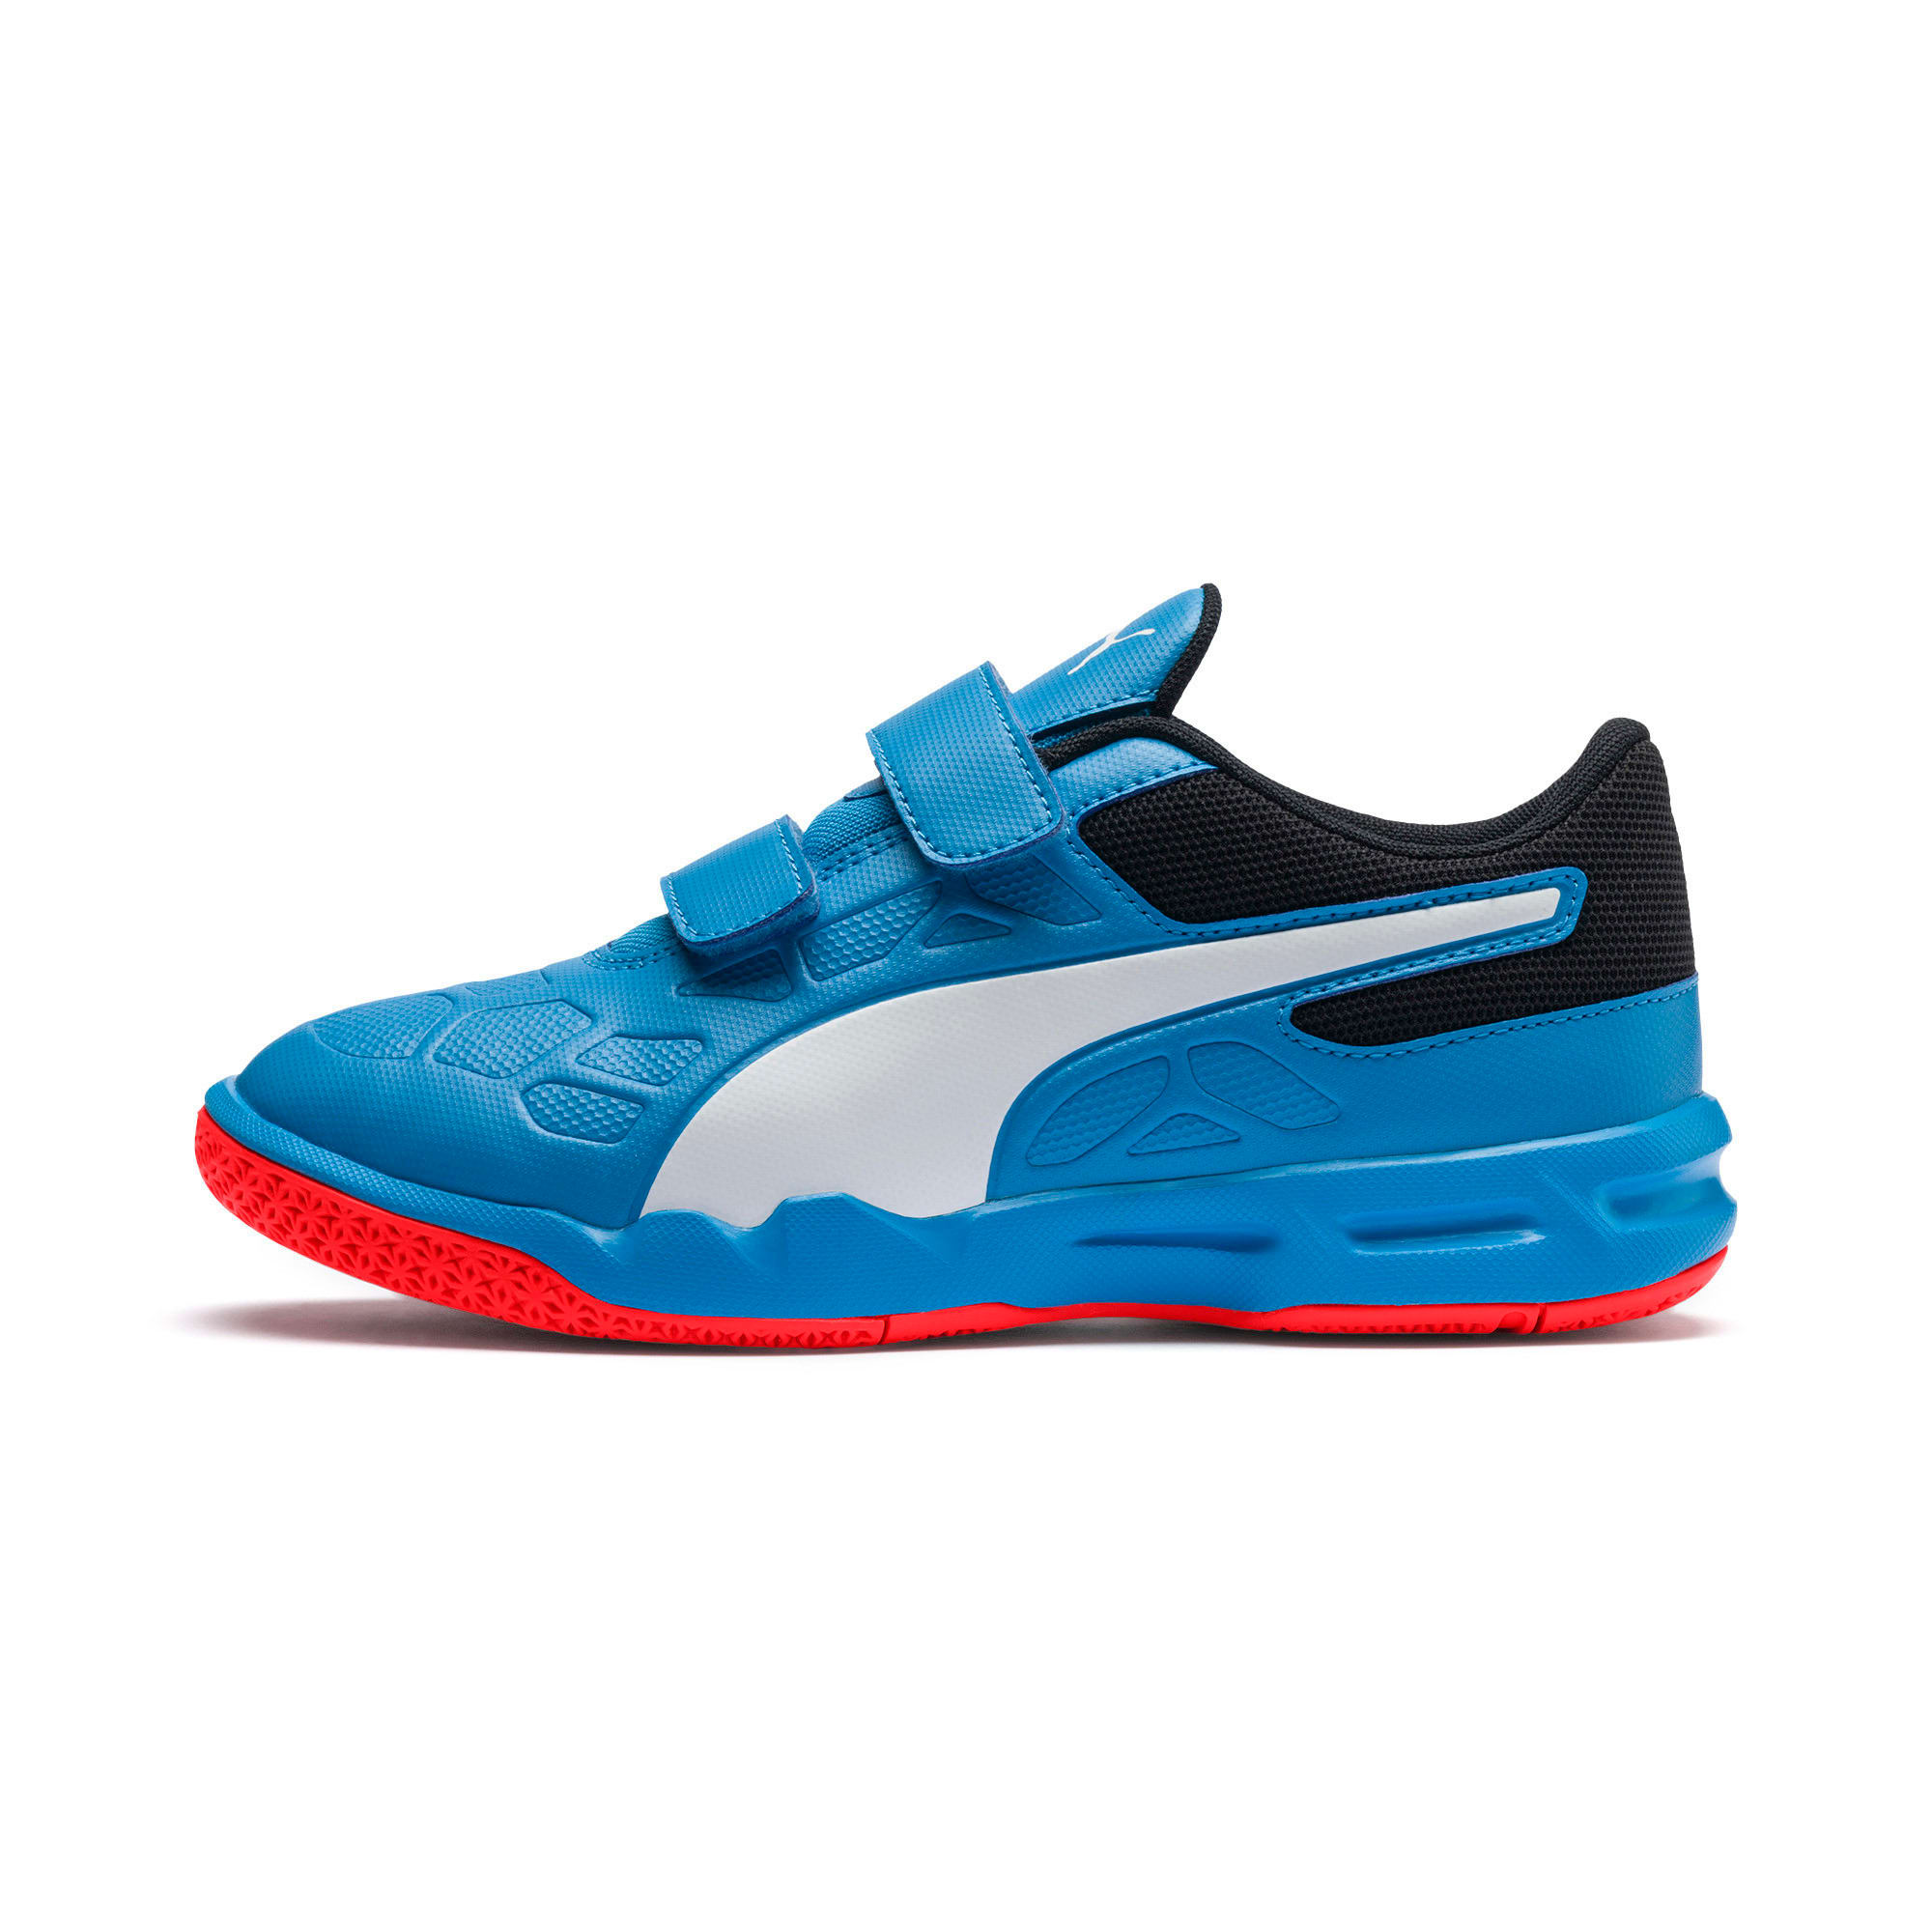 Thumbnail 1 of Tenaz V Youth Trainers, Bleu Azur-White-Black-Red, medium-IND